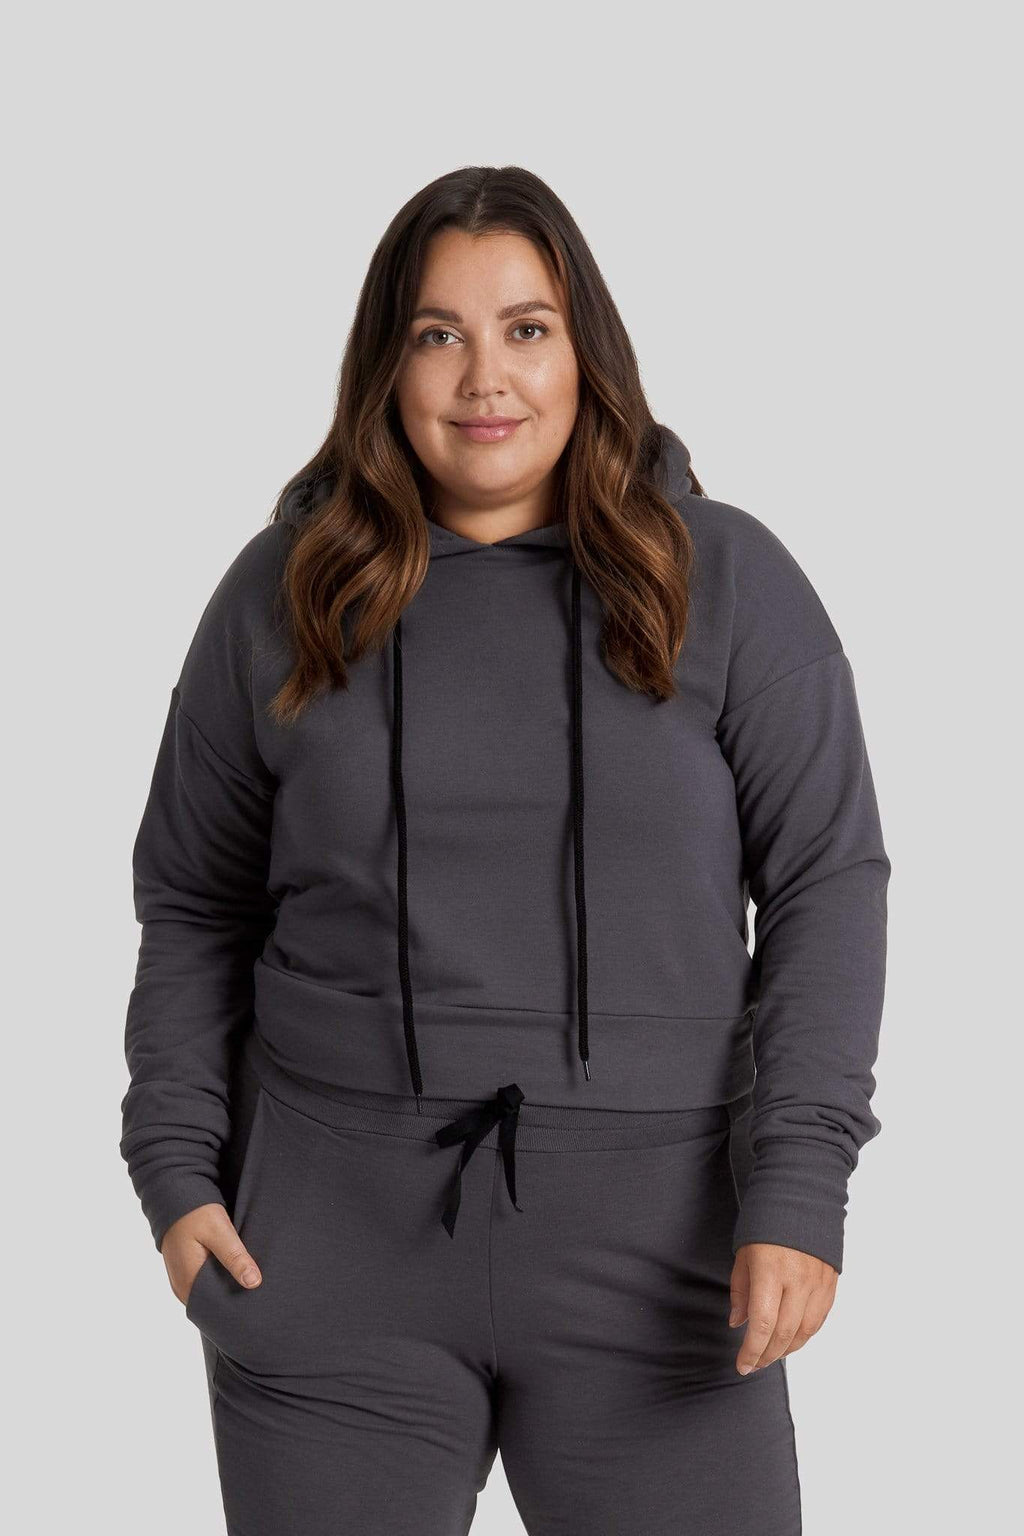 A woman is shown wearing a dark grey hoodie with matching joggers